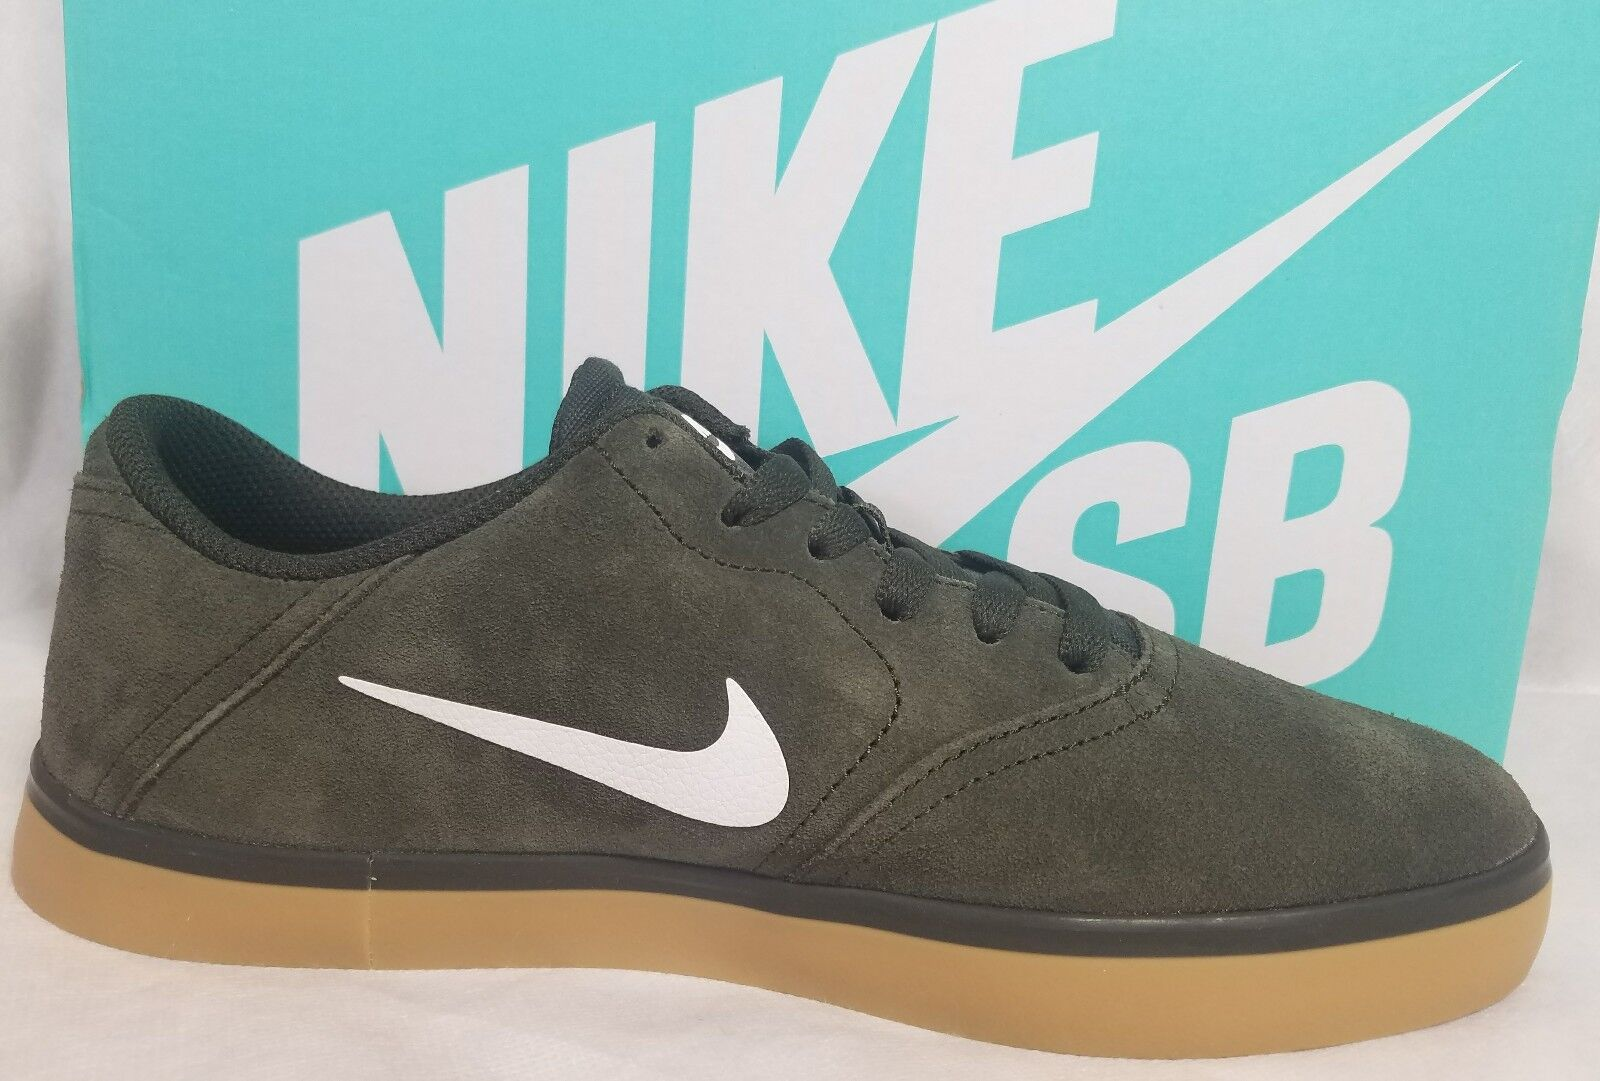 New Nike SB Check Men Comfortable The latest discount shoes for men and women